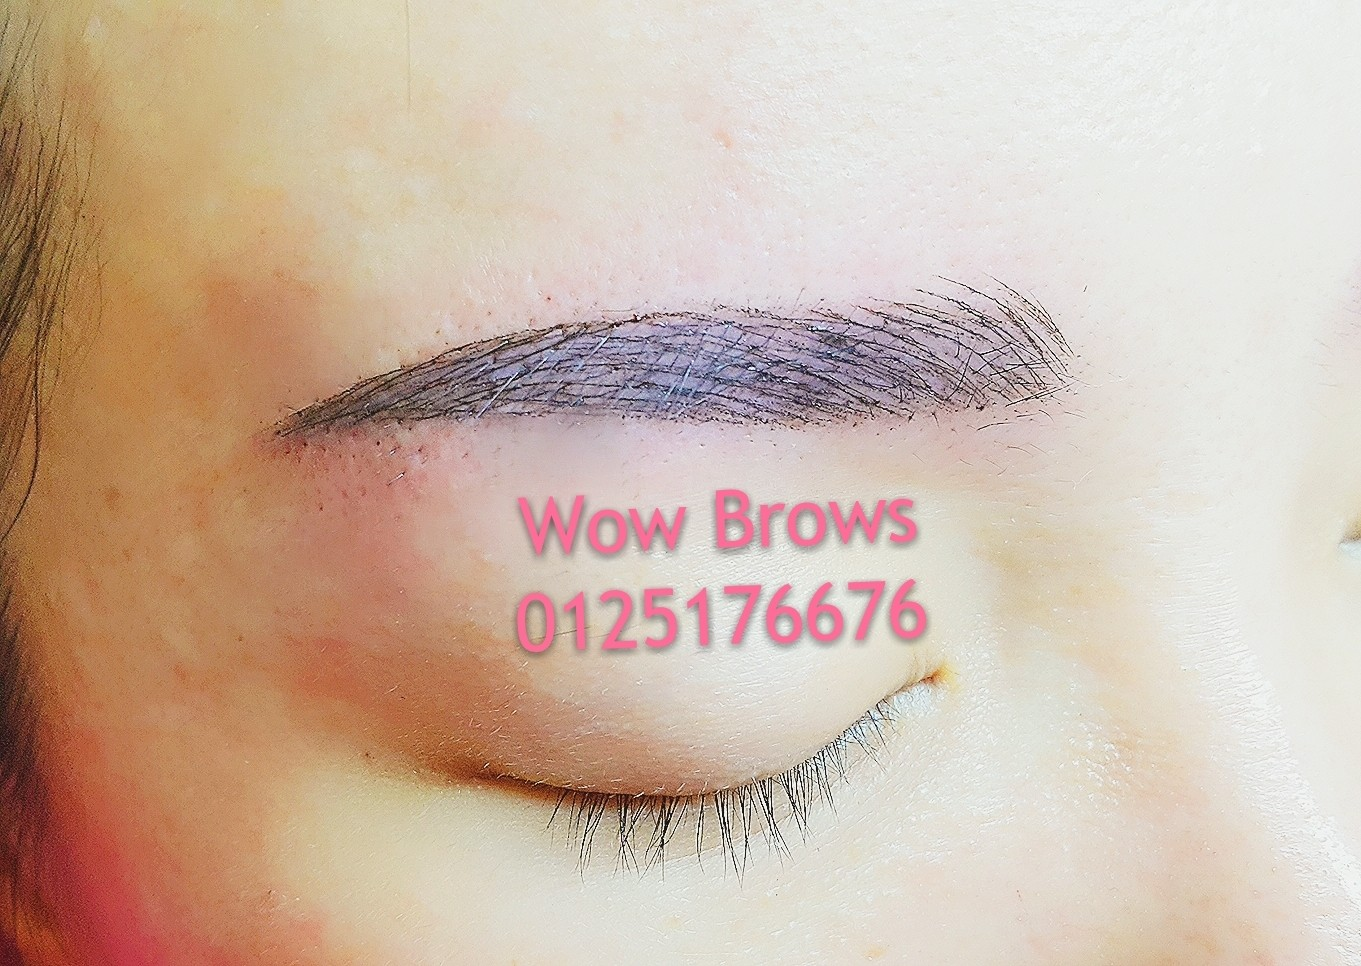 Www.facebook.com/wowbrowspenang For reservations call 0125176676